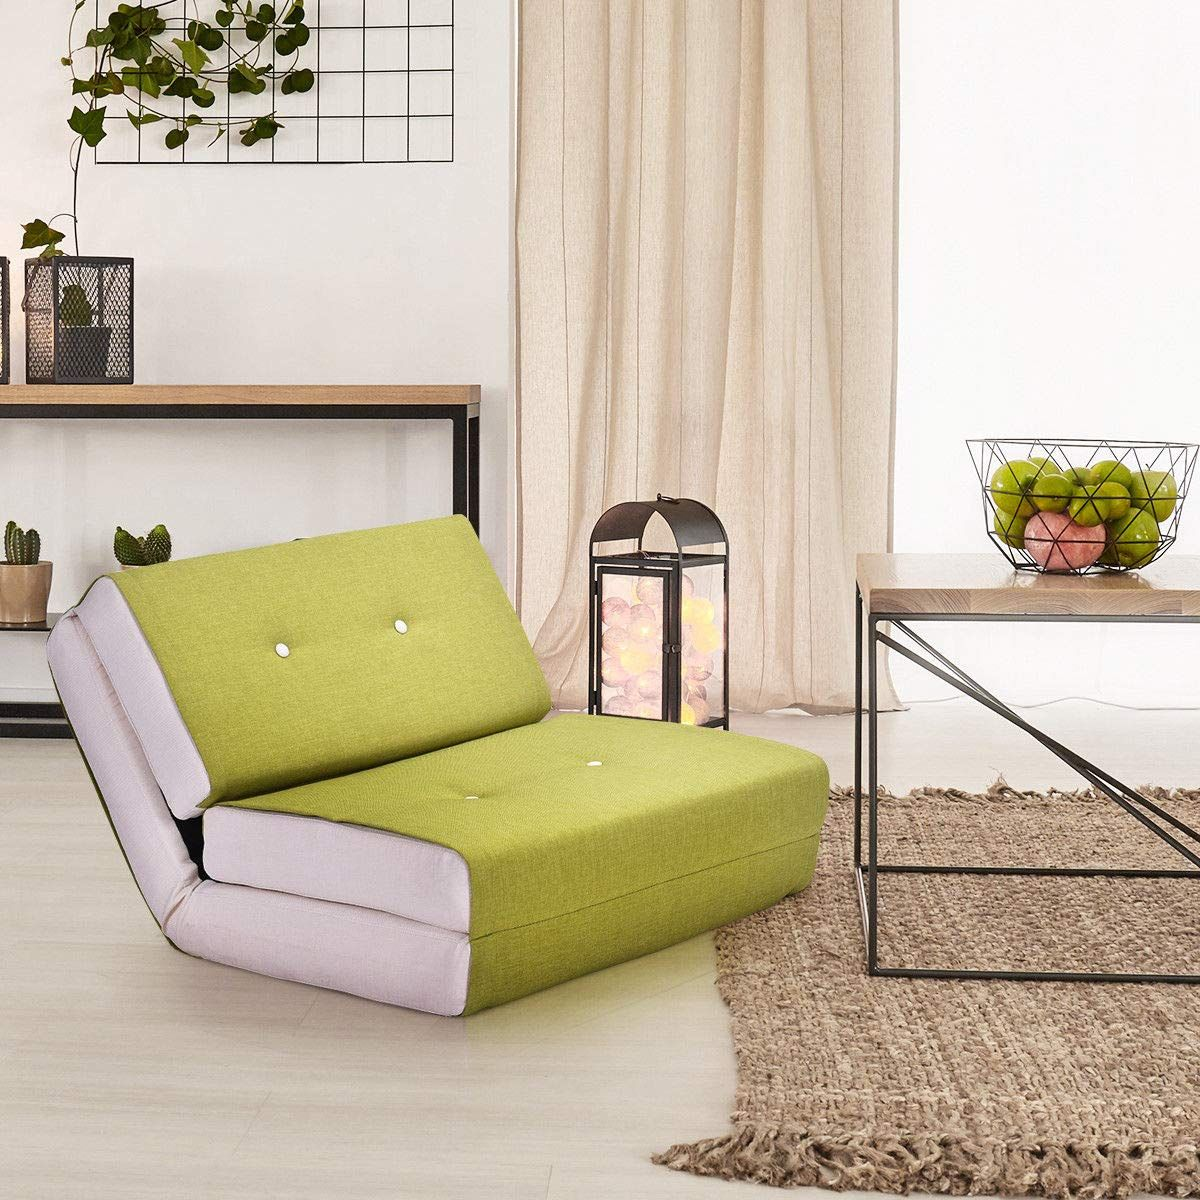 Giantex Fold Down Chair Convertible Sleeper Bed Couch